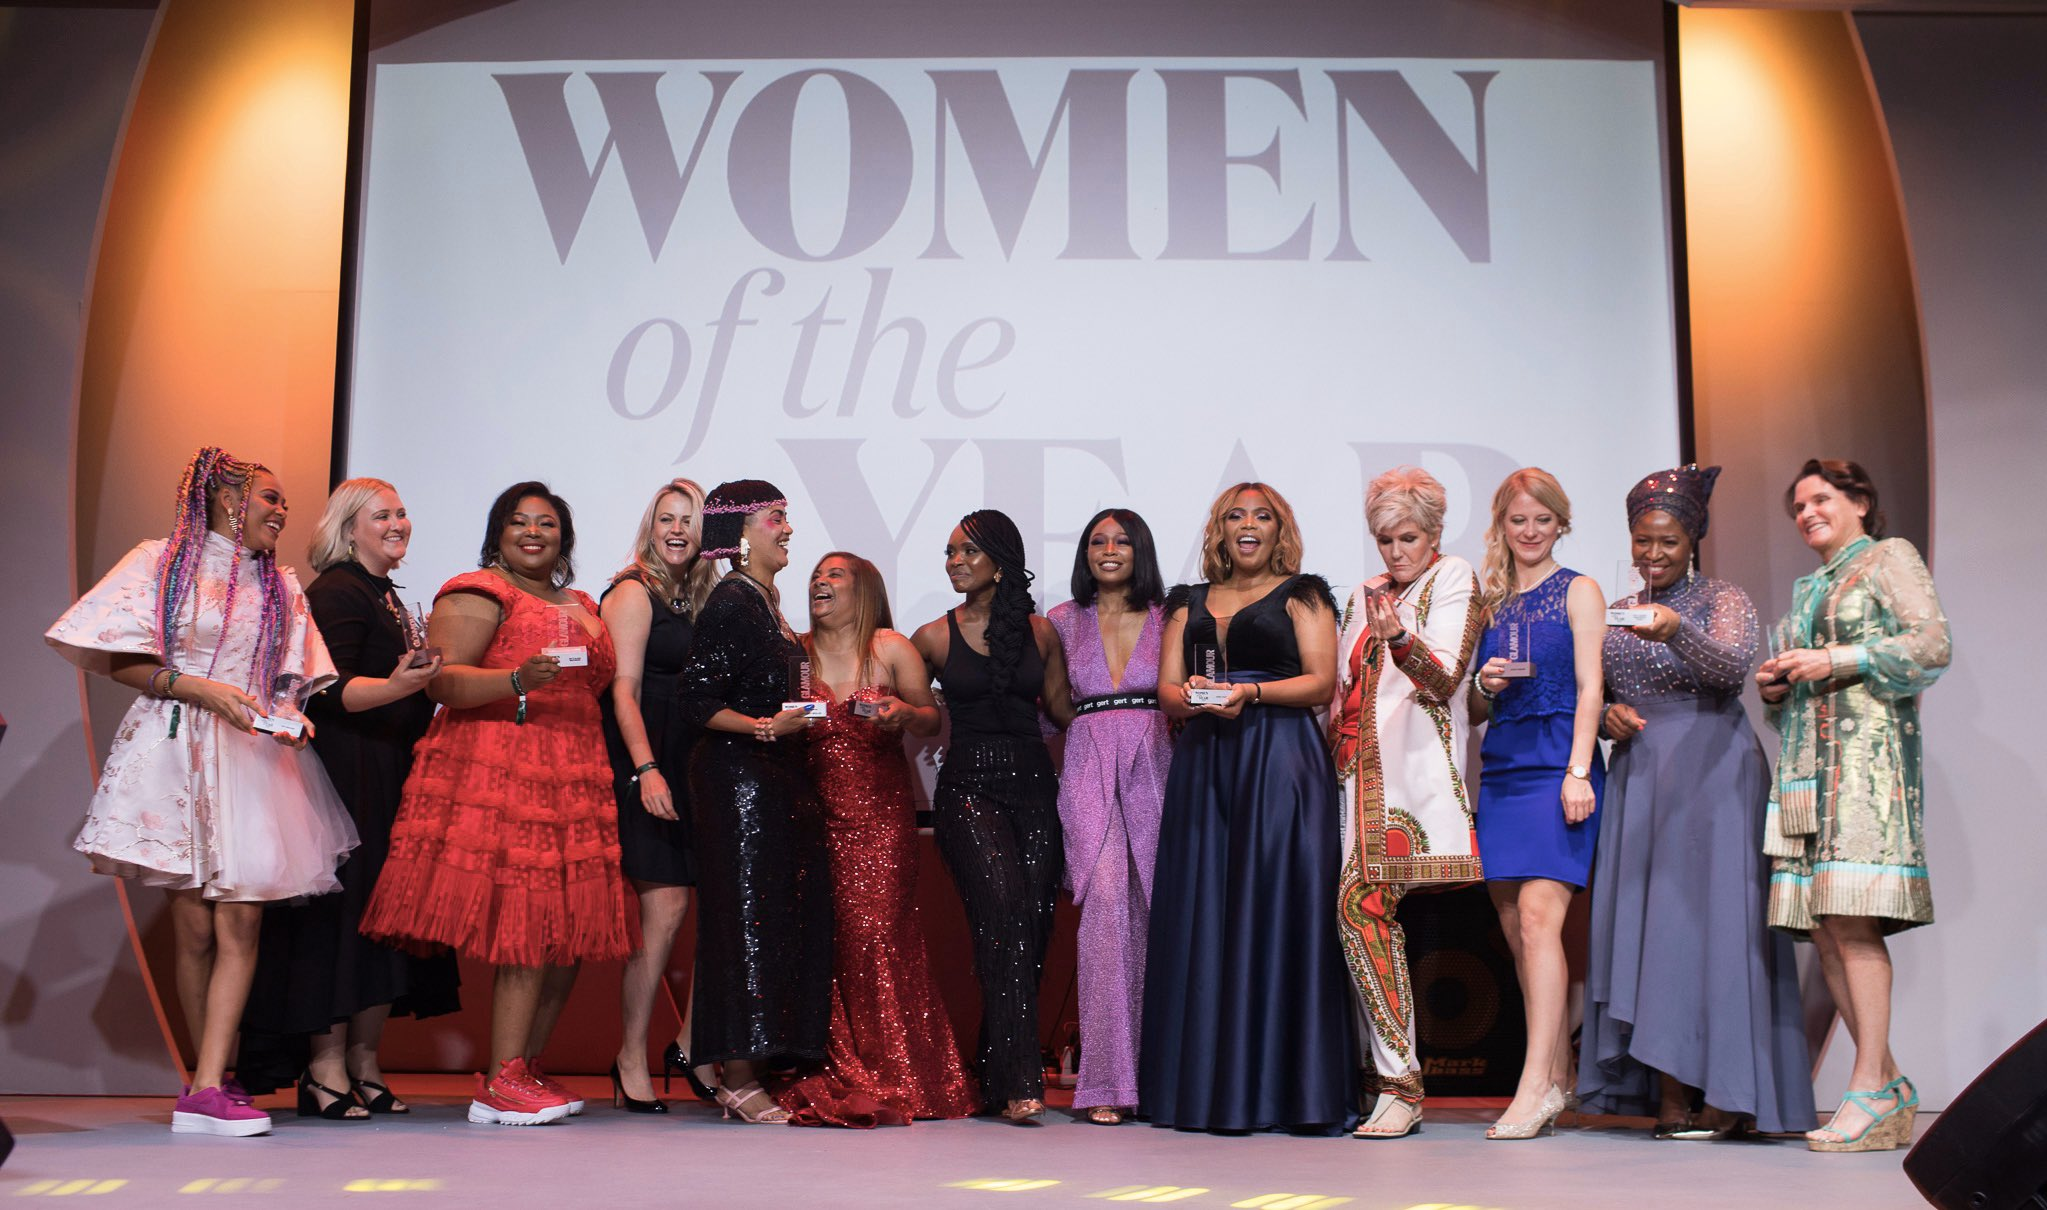 Glamour-women-of-the-year-awards-2019-winners